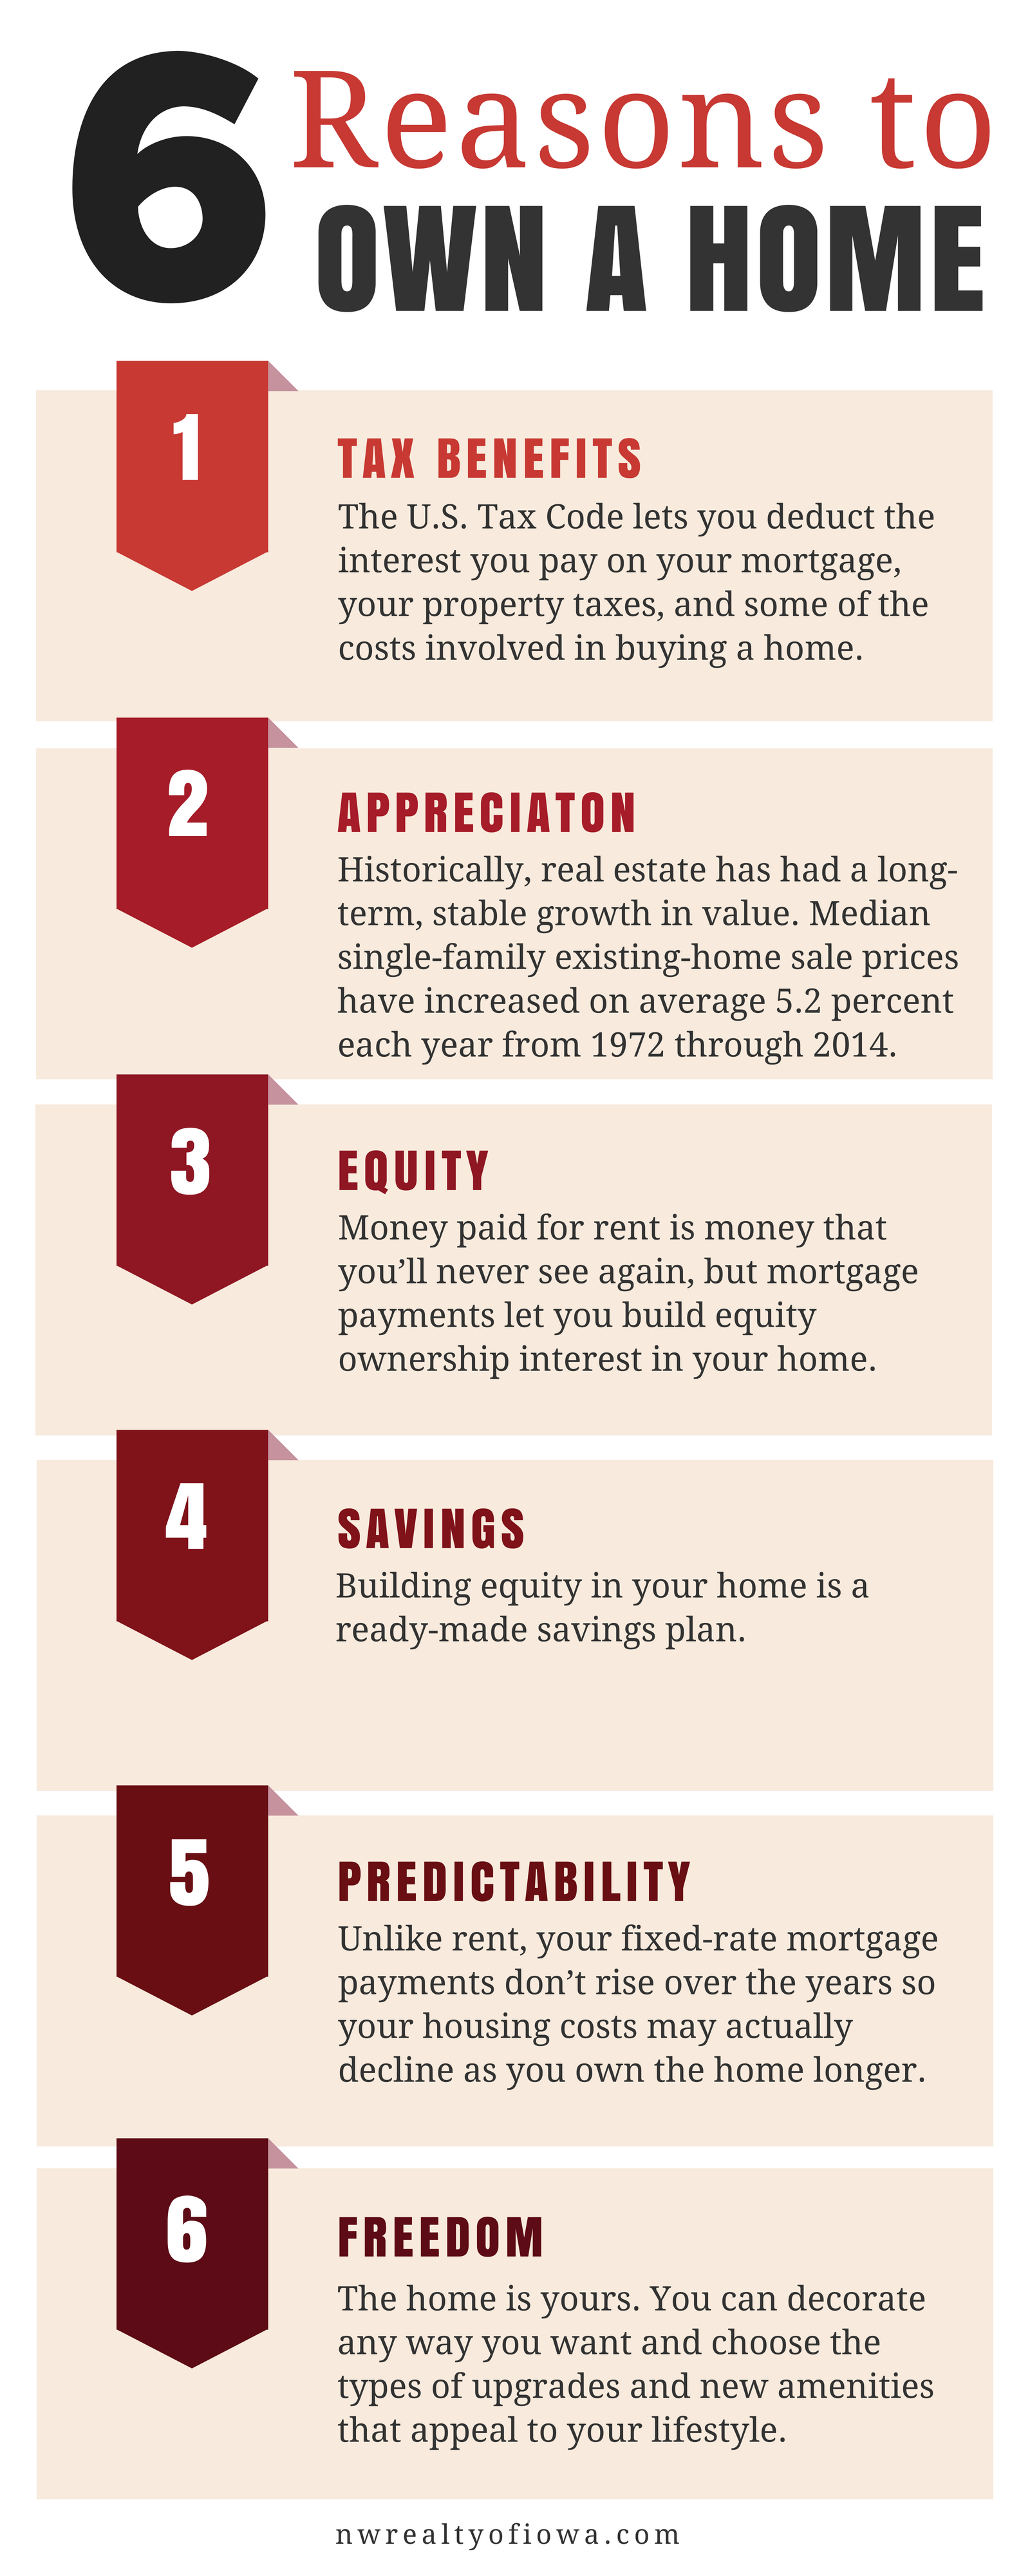 6 Reasons to Own a Home | Northwest Realty of Iowa